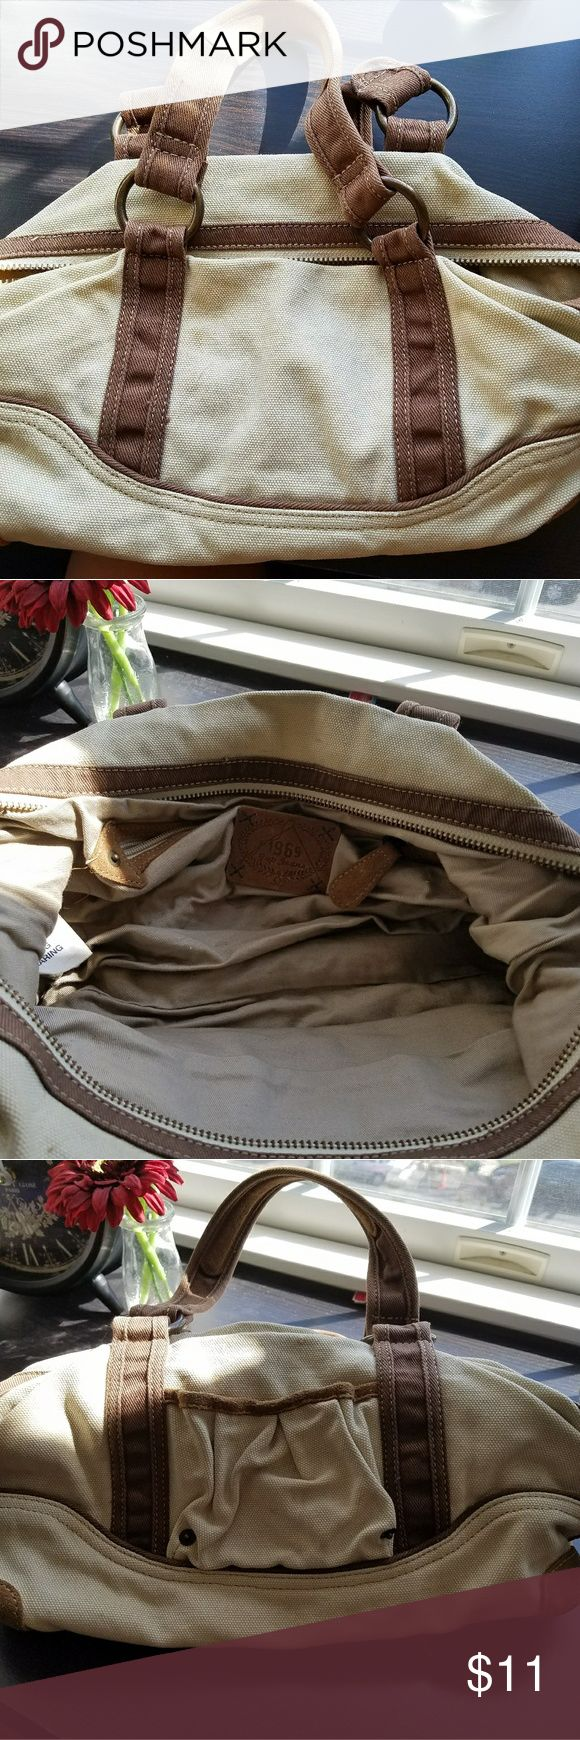 Gap Handbag Gap Tan Canvas Handbag with Brown Straps (15 Inches across) GAP Bags Shoulder Bags